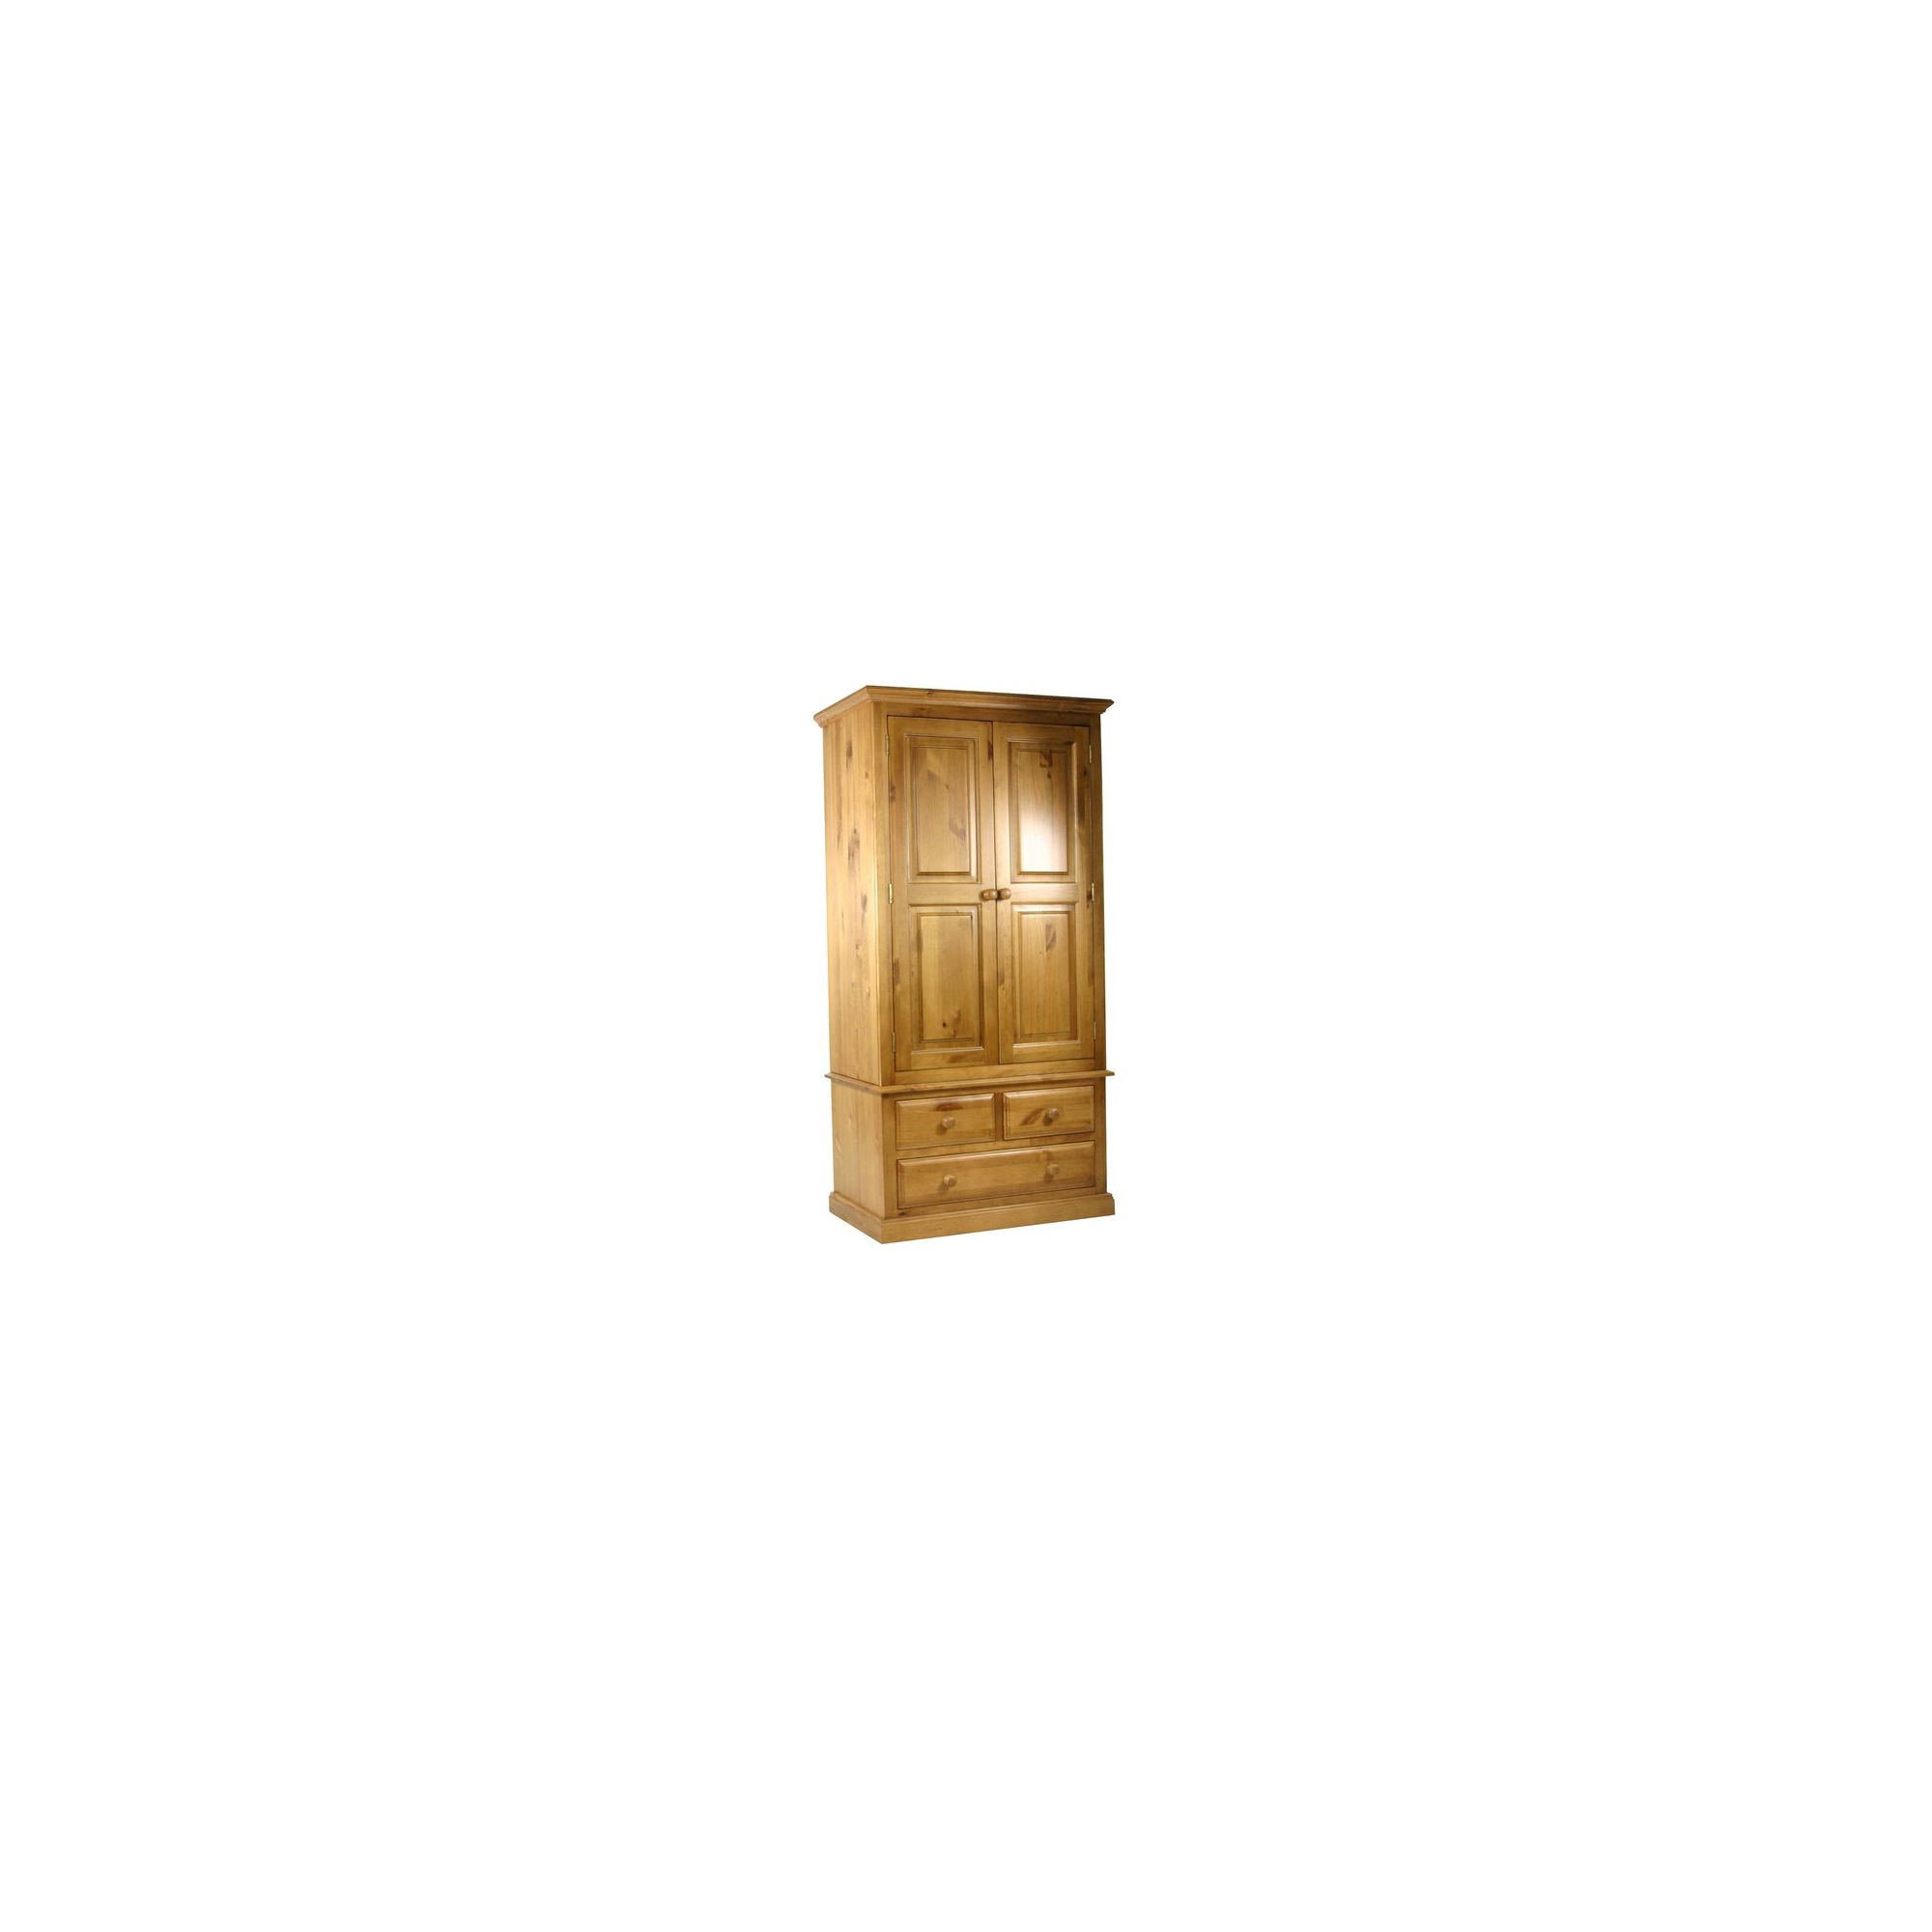 Kelburn Furniture Pine Gents Small Wardrobe in Antique Wax Lacquer at Tesco Direct